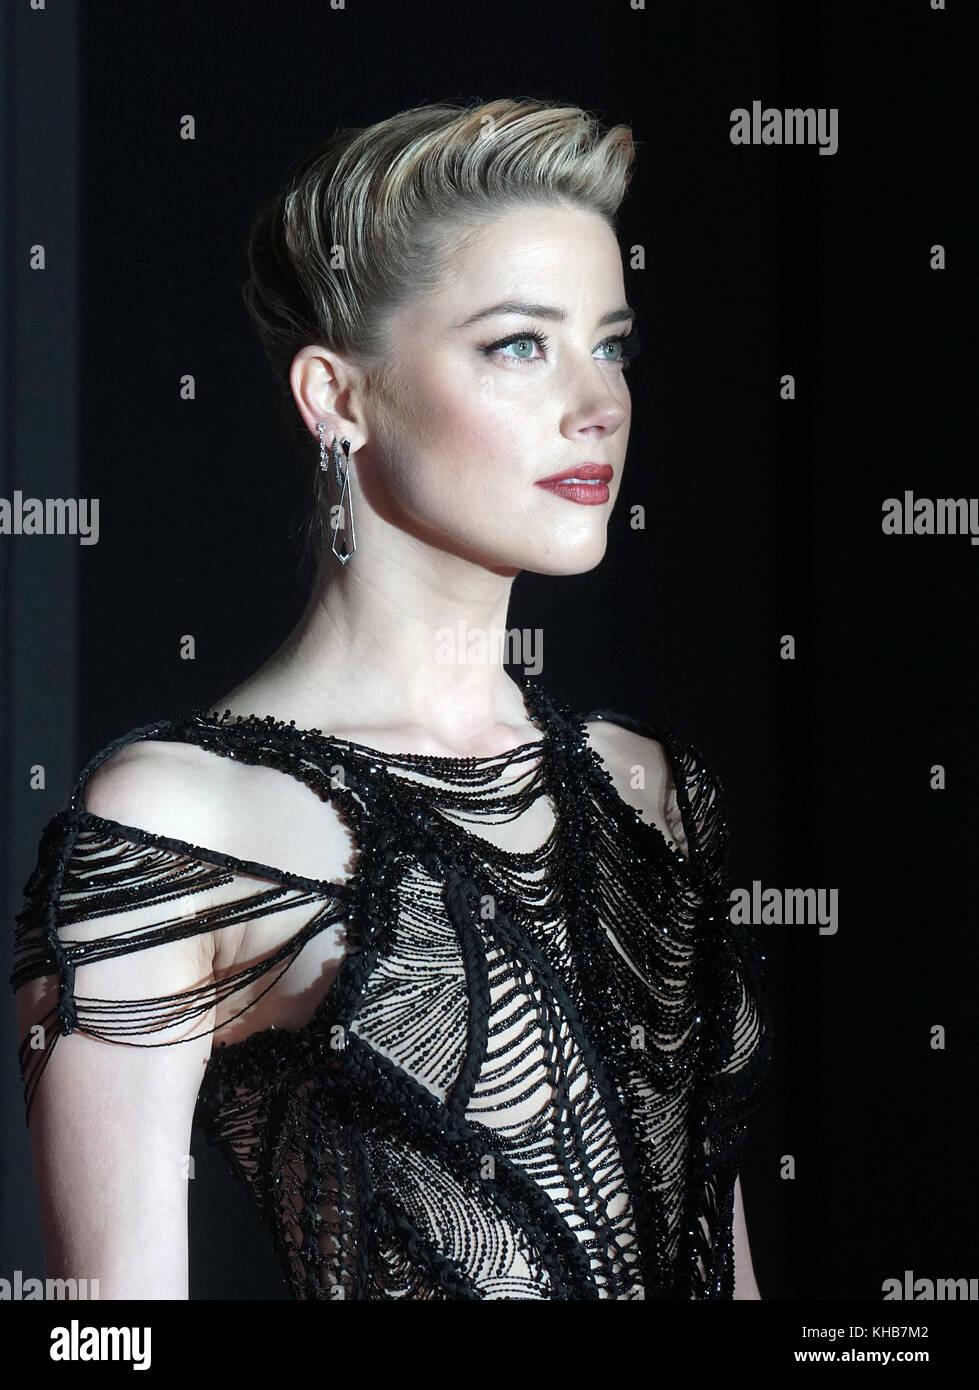 Amber Heart  attend the premiere of Warner Bros. Pictures' 'Justice League' at Dolby Theatre on November - Stock Image